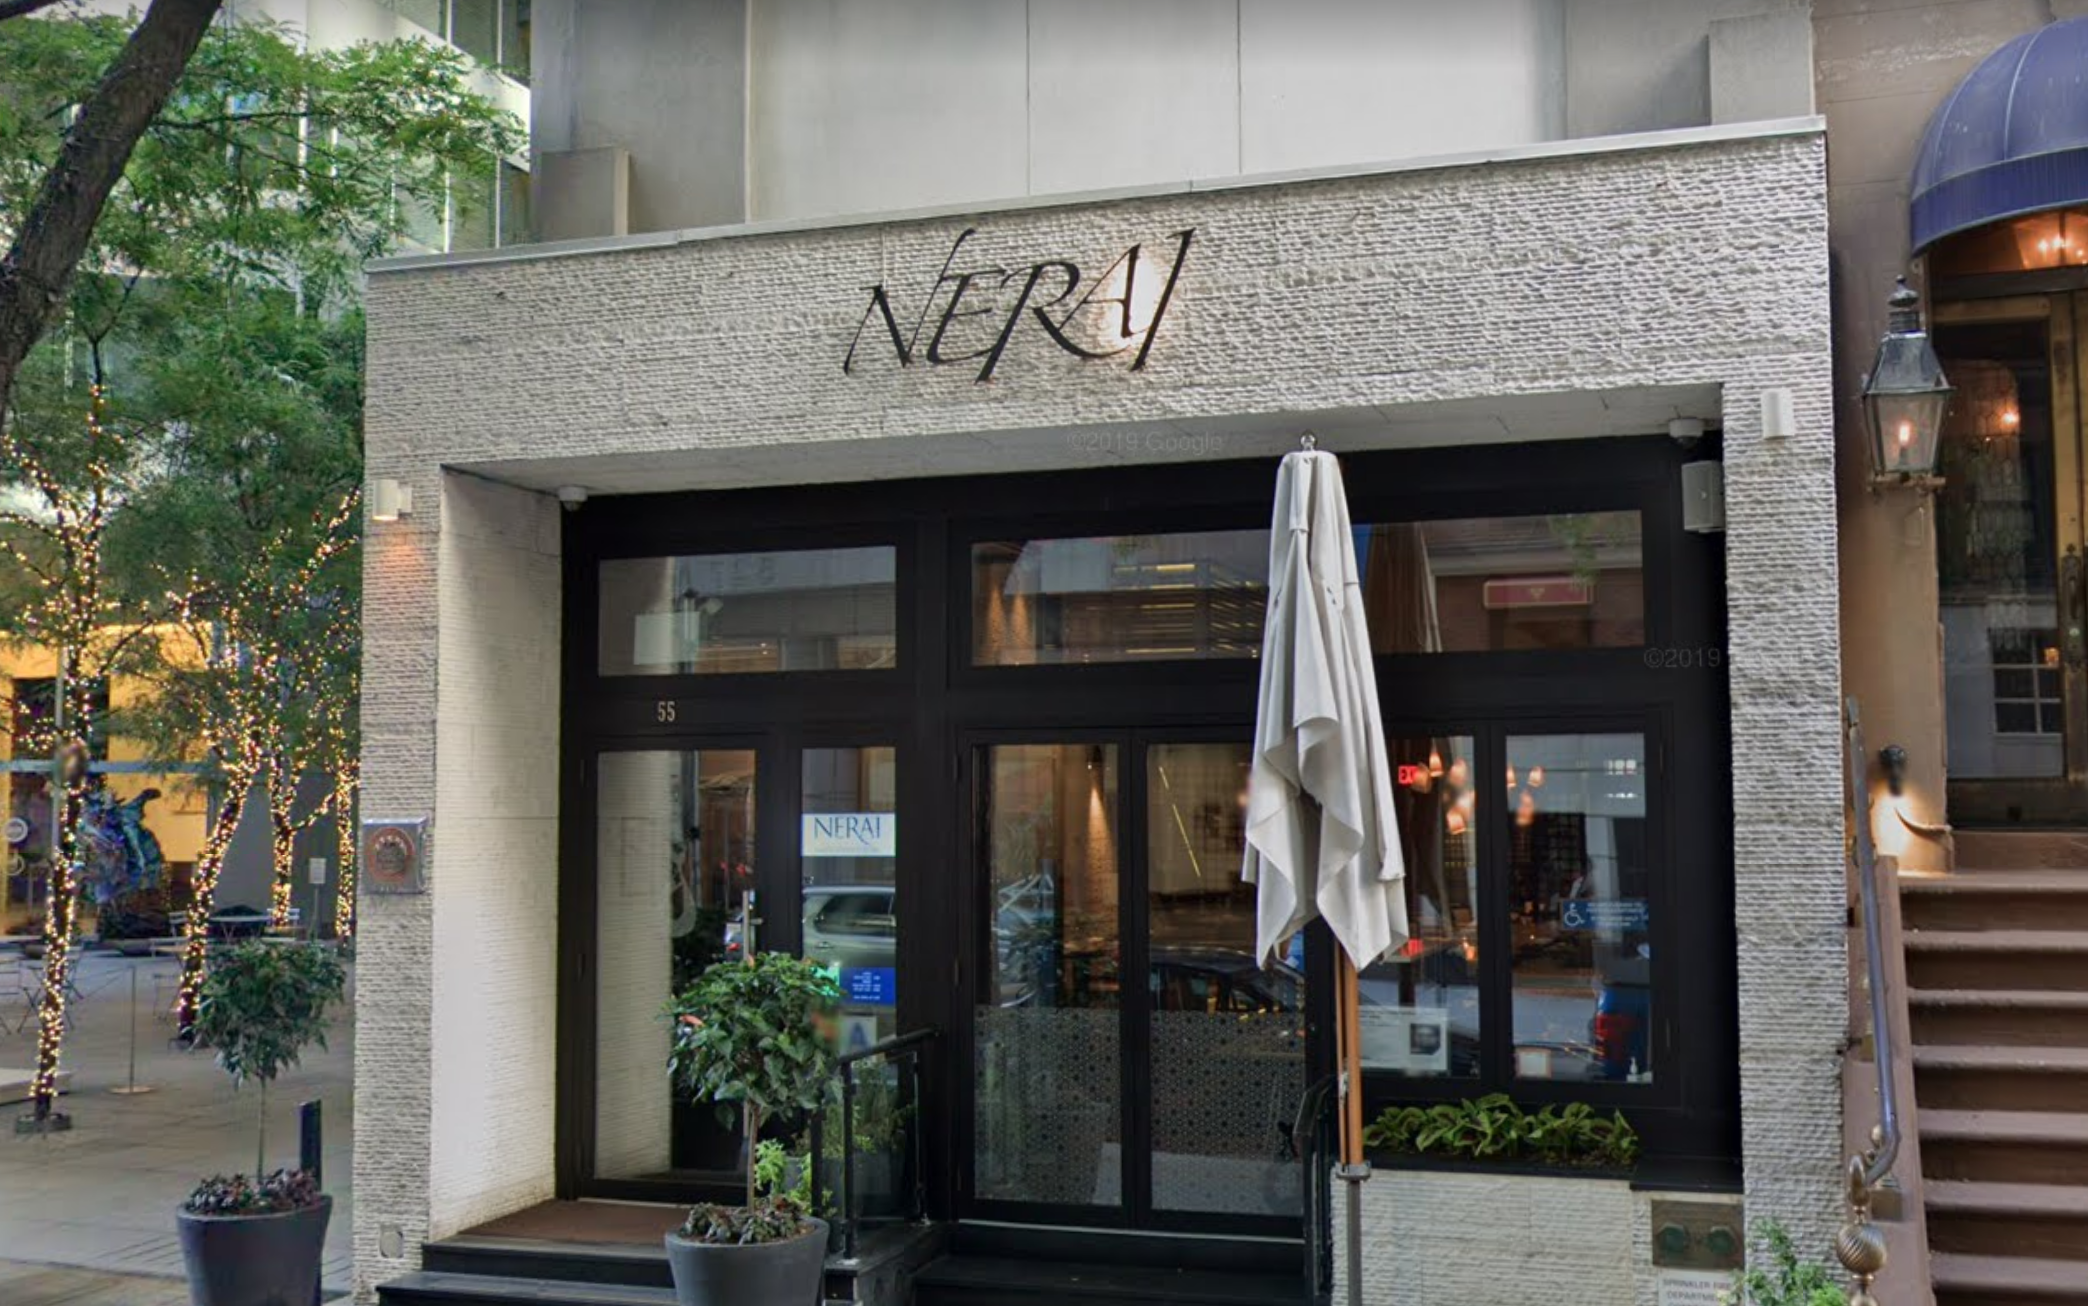 The stone-clad exterior of a greek restaurant called Nerai. An outdoor seating umbrella is placed in the front.